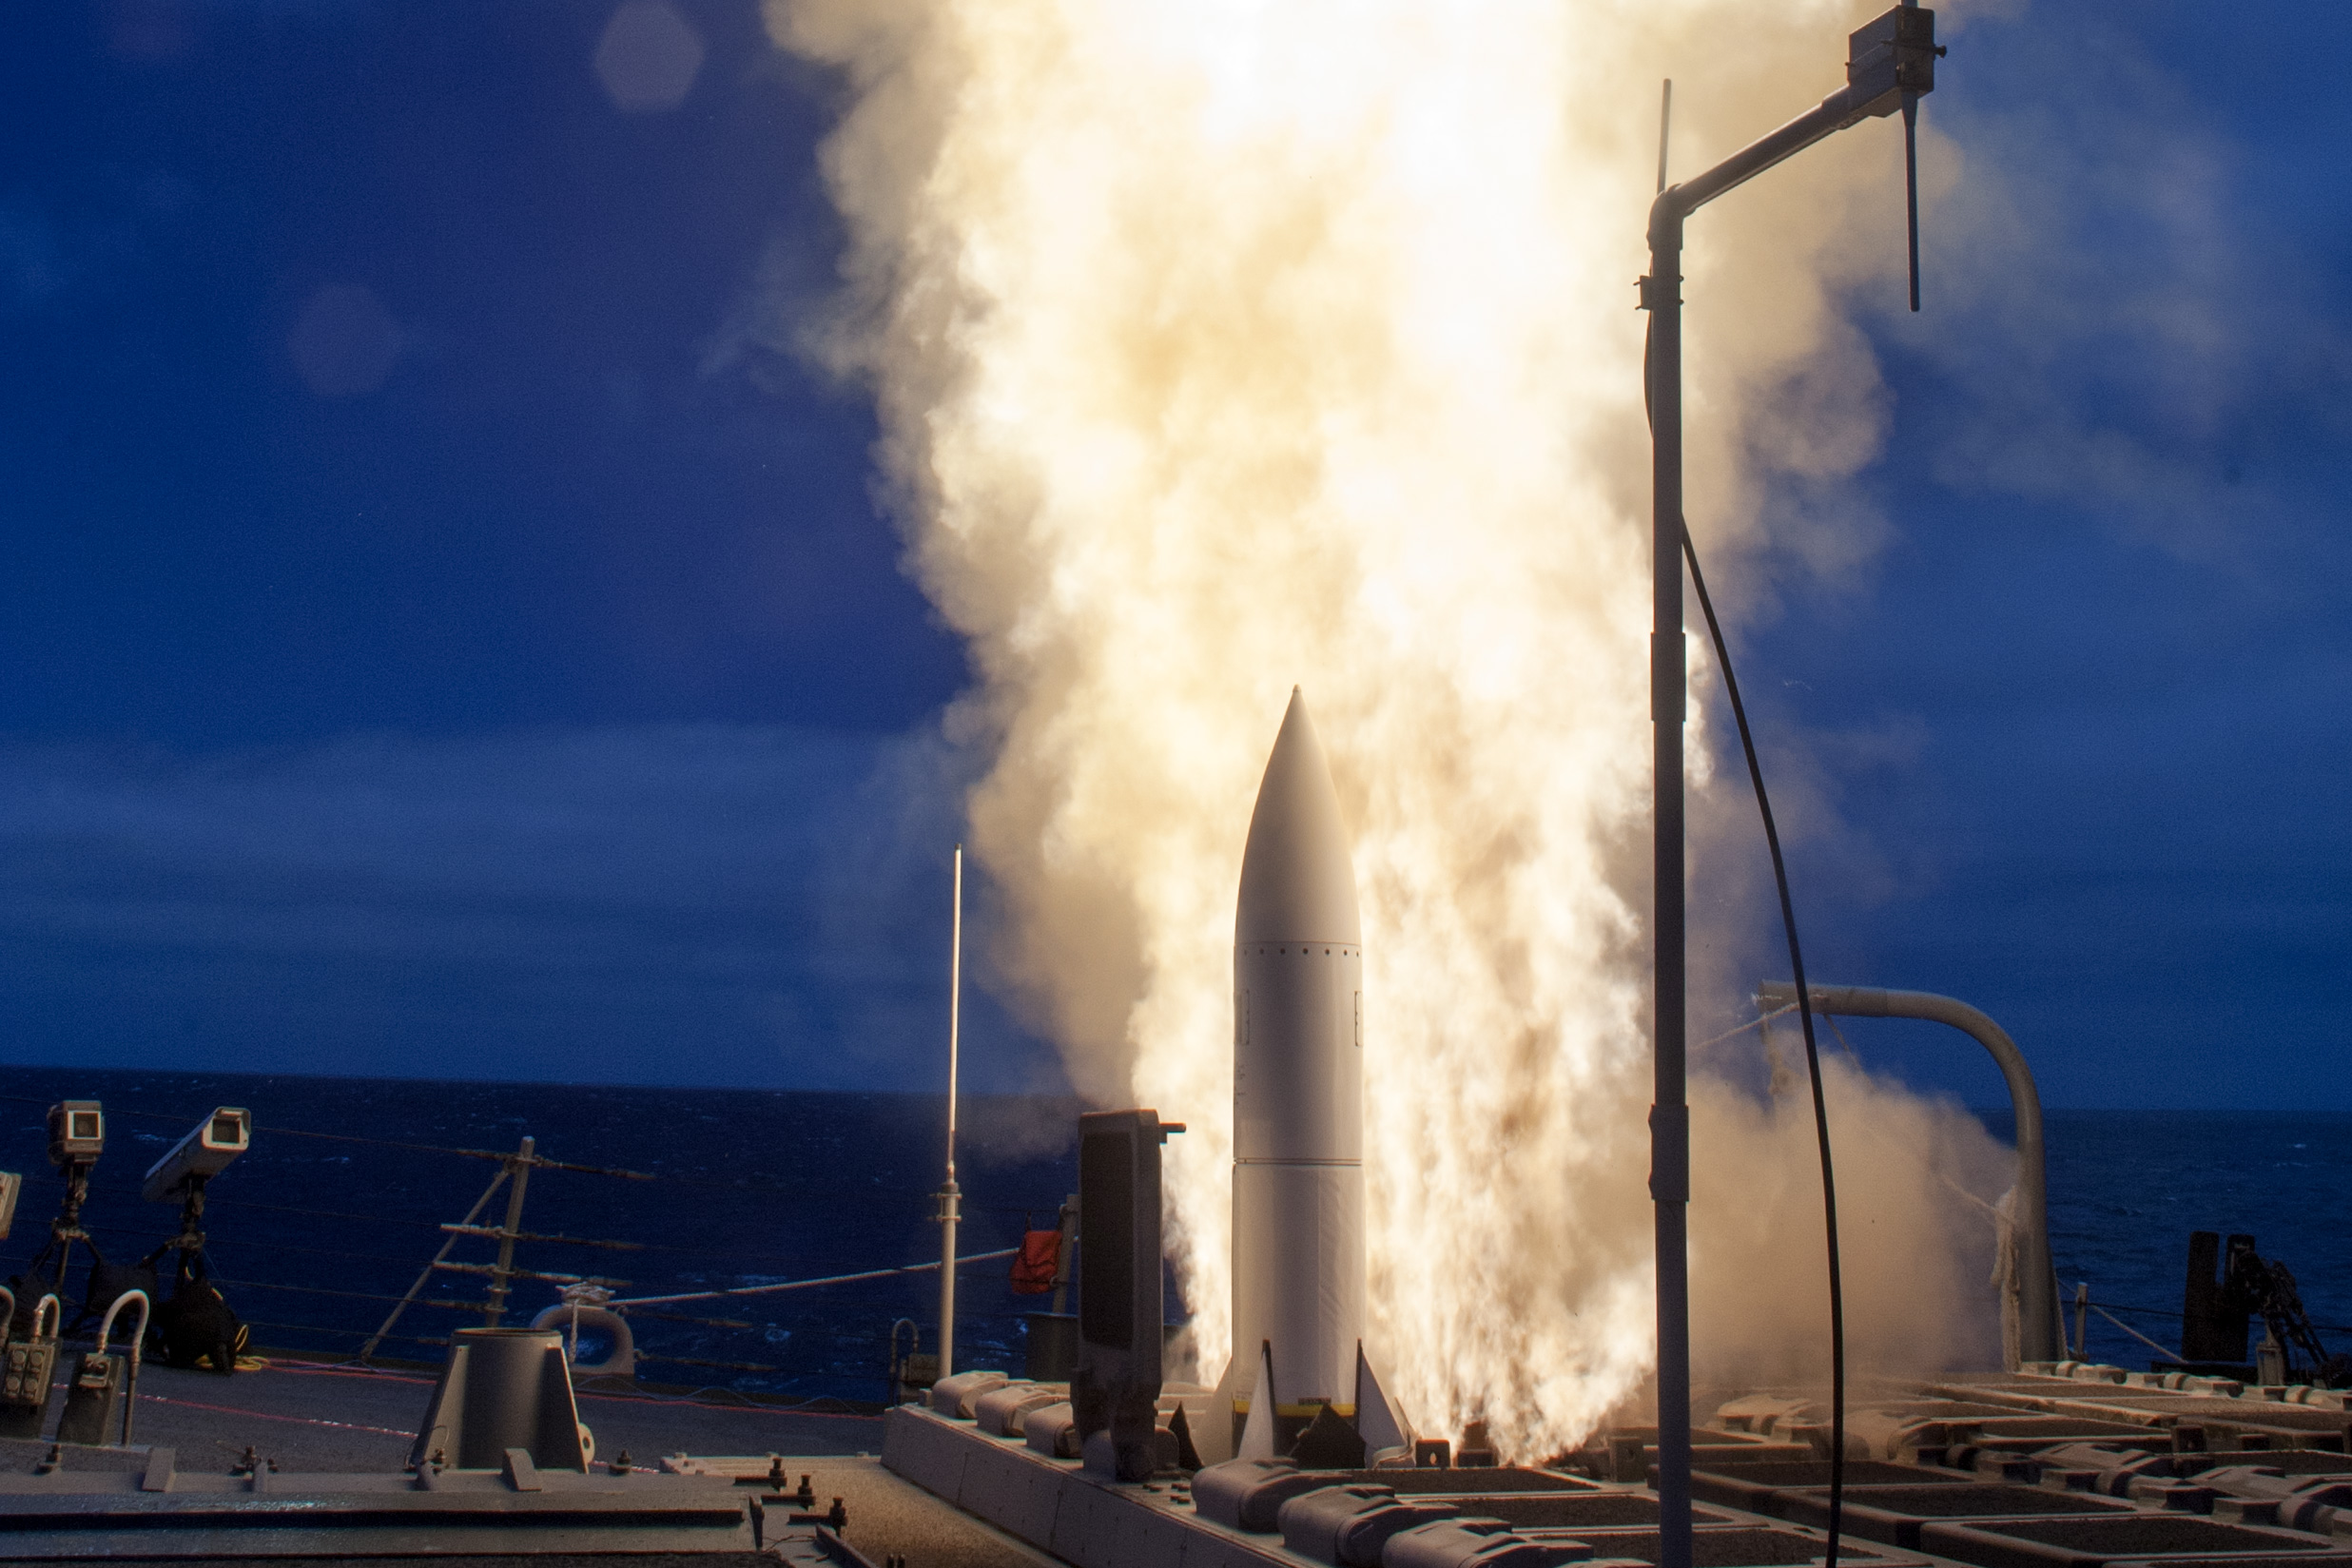 USS John Paul Jones (DDG-53) launches a Standard Missile 6 (SM-6) during a live-fire test of the ship's aegis weapons system. US Navy Photo